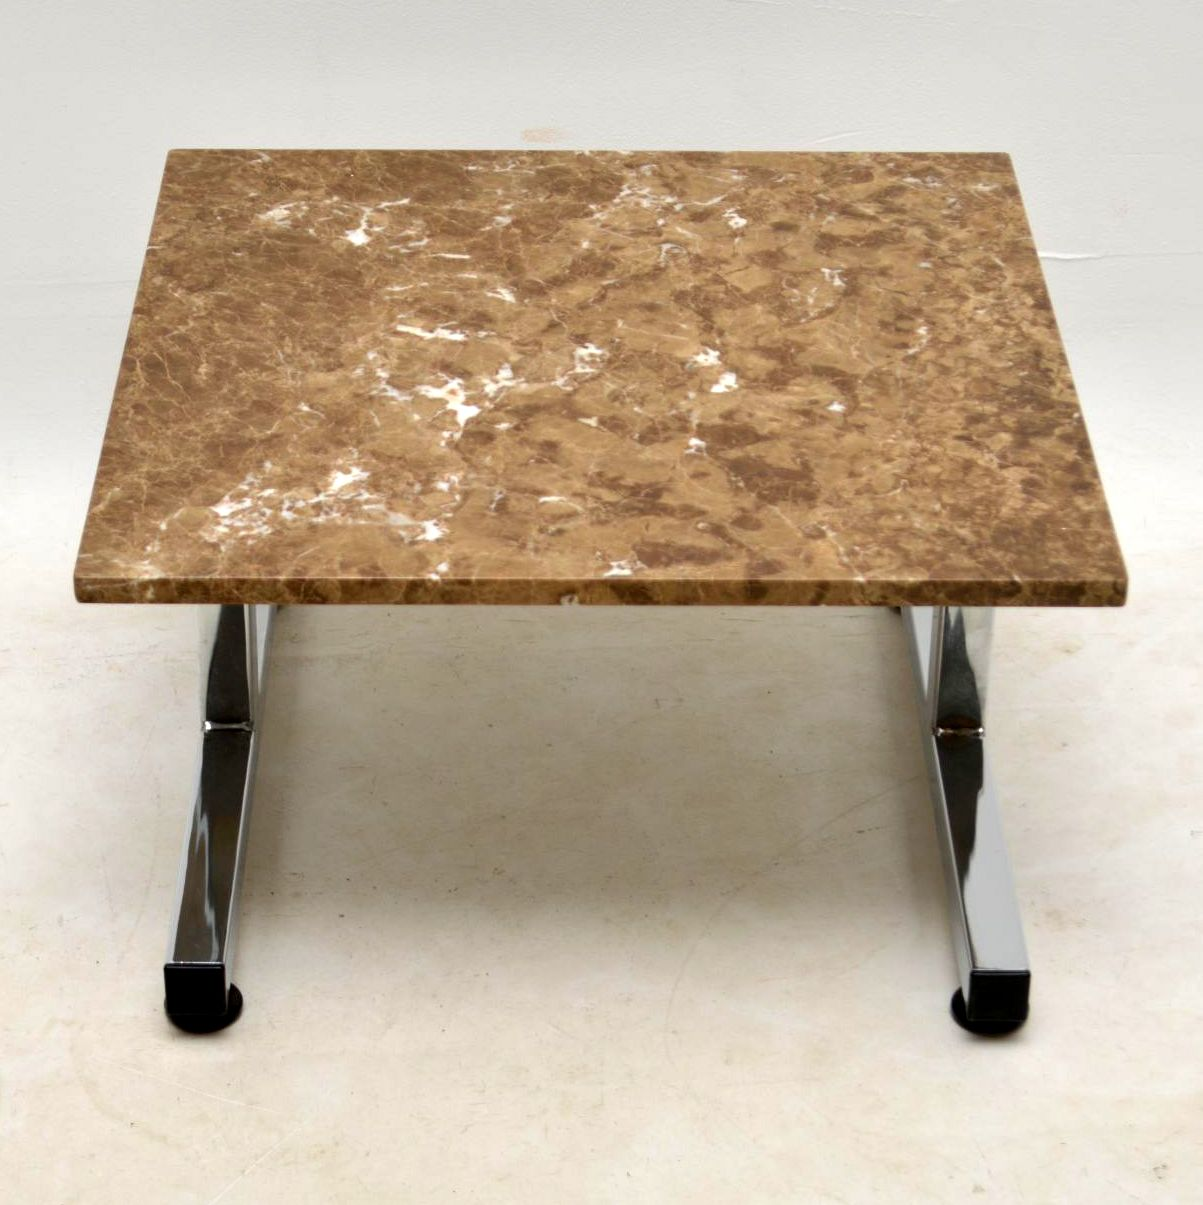 Marble And Chrome Coffee Table: 1970's Vintage Marble & Chrome Coffee Table